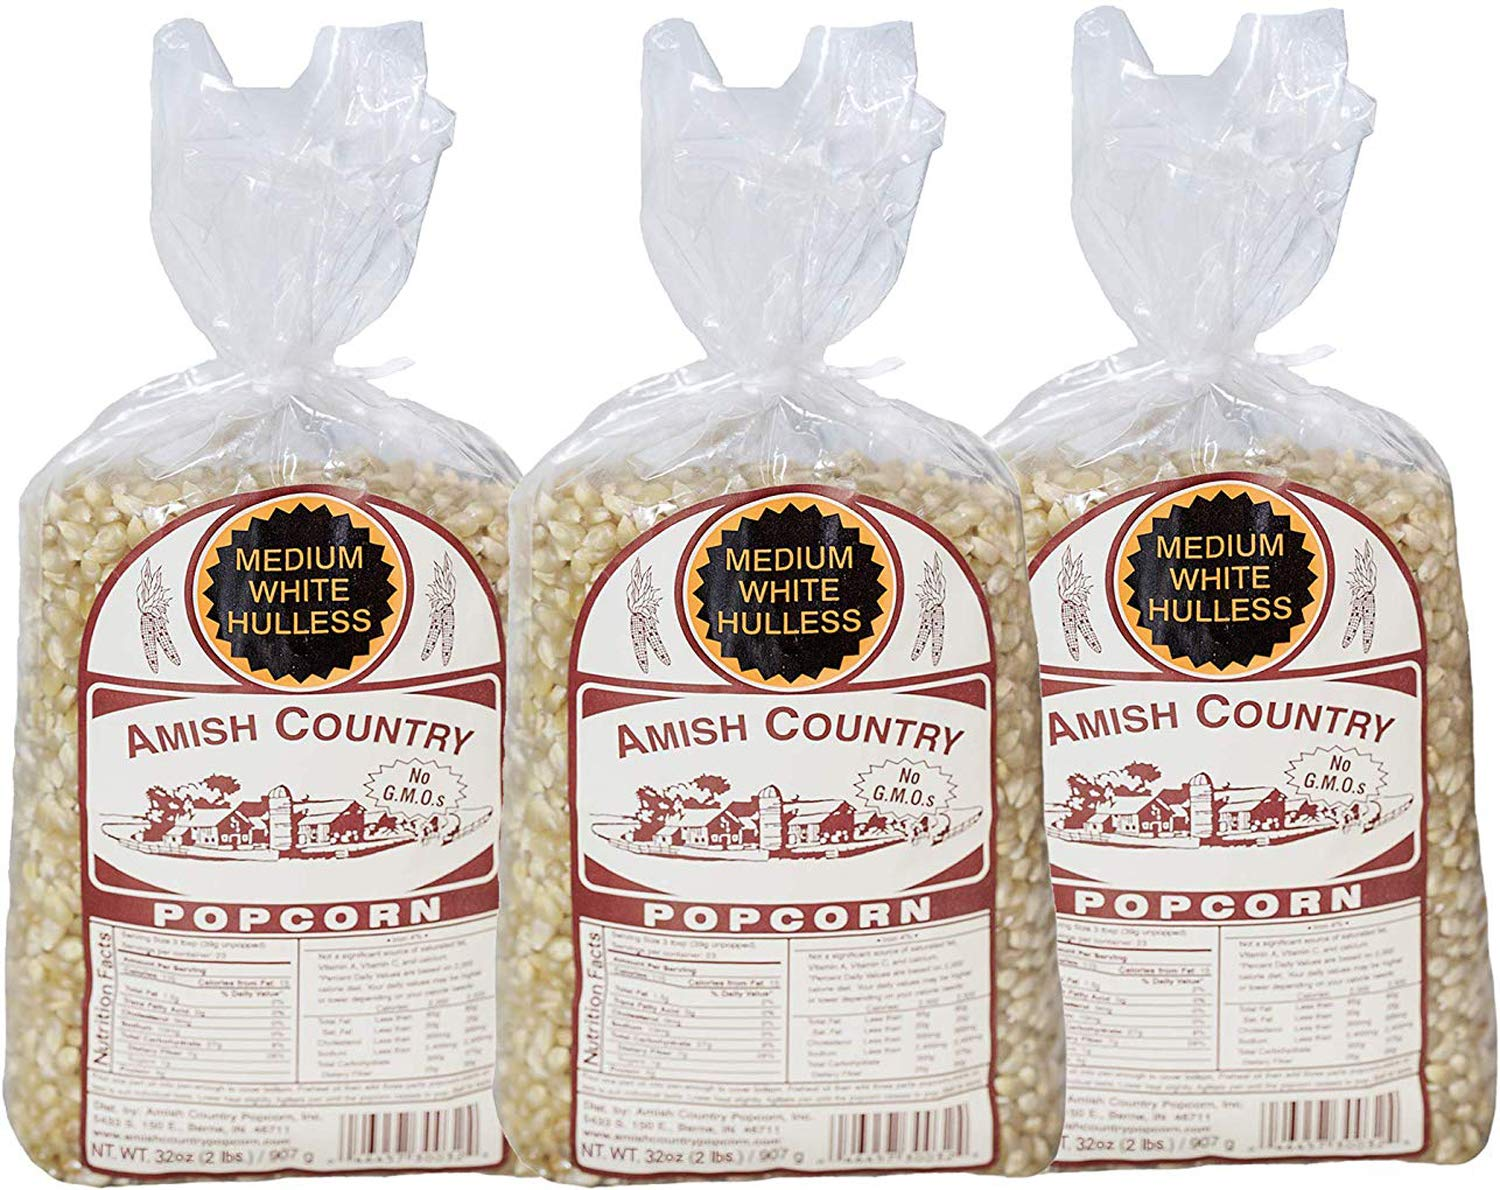 Amish Country Popcorn - 3 (2 Pound Bags) Medium White Kernels Gift Set Old Fashioned, Non GMO and Gluten Free - With Recipe Guide by Amish Country Popcorn